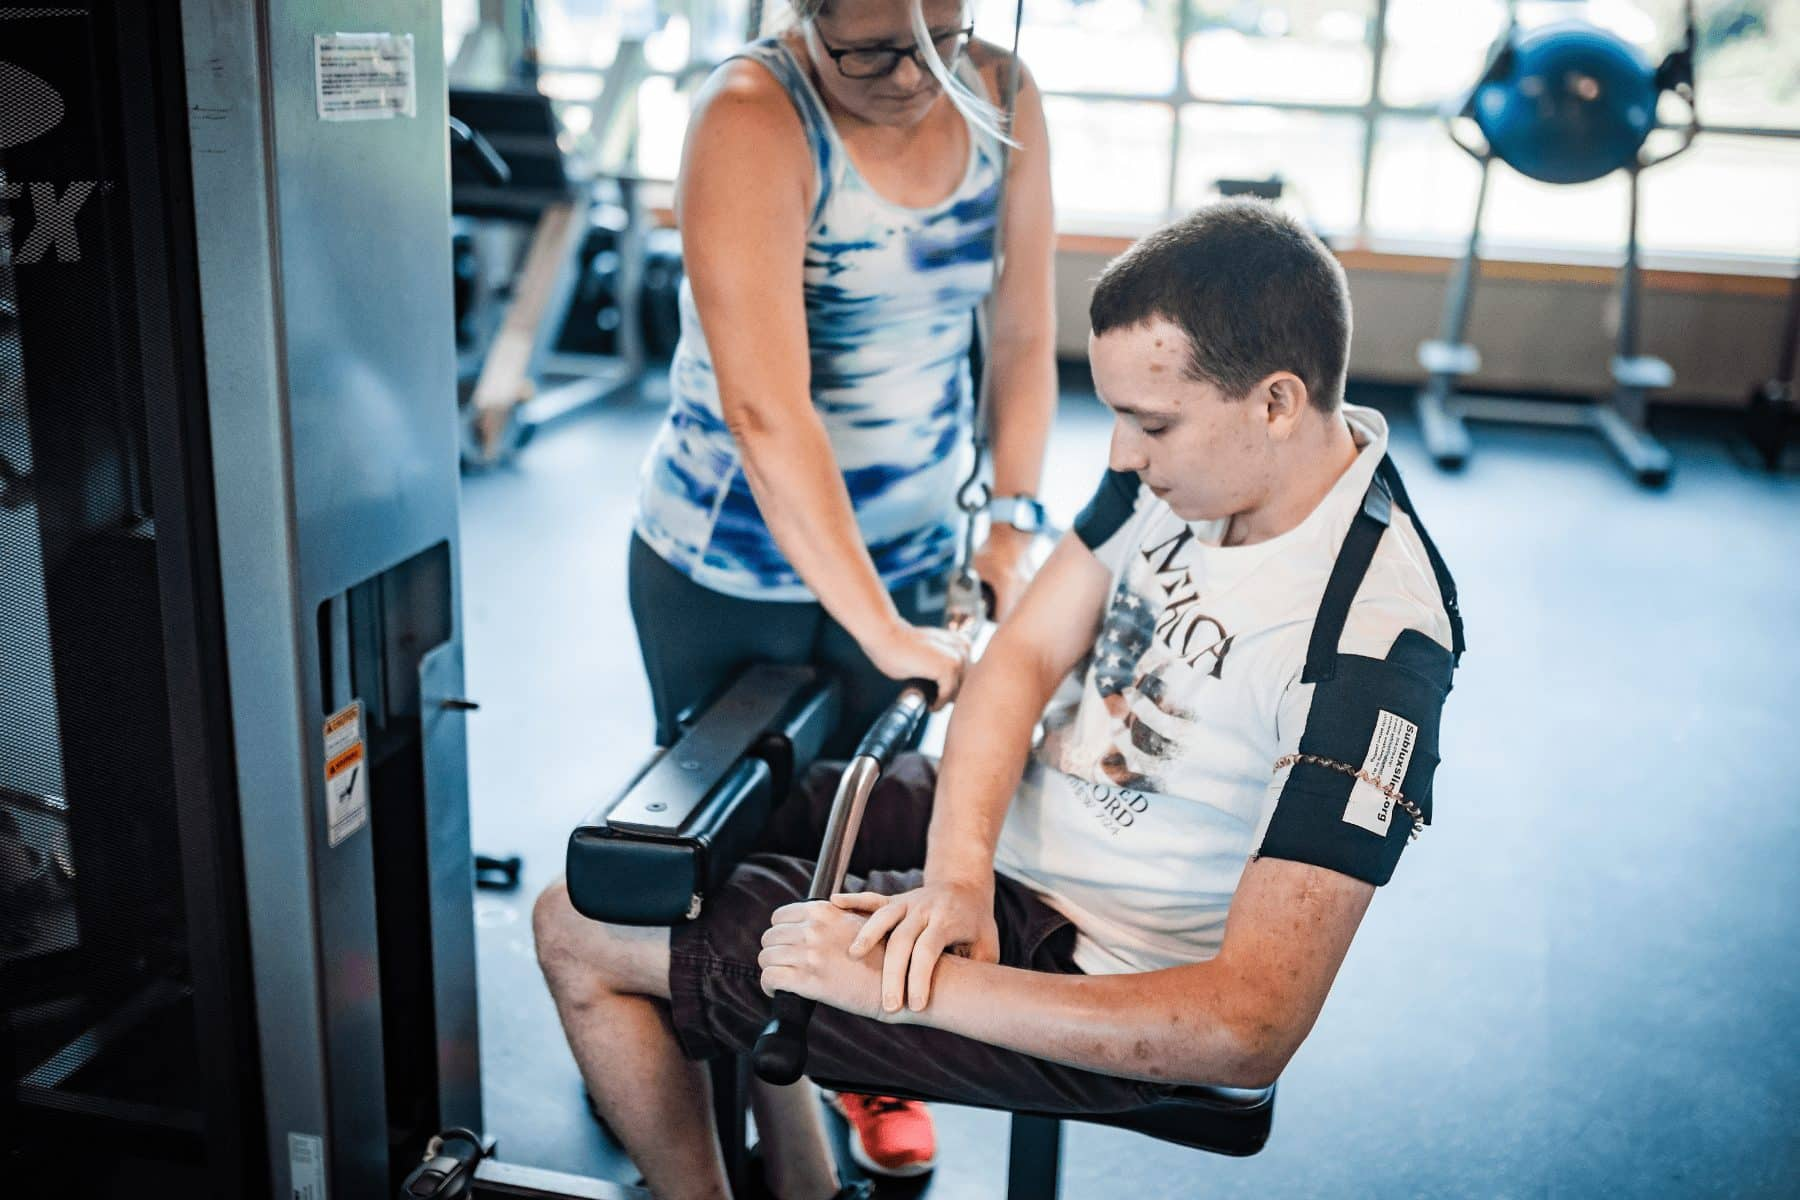 Joe's time at the York JCC has not only made him stronger physically, but he's found a community of support to provide emotional and mental encouragement to help him reach his goals. (Photo by Jeff Lautenberger for Our York Media)